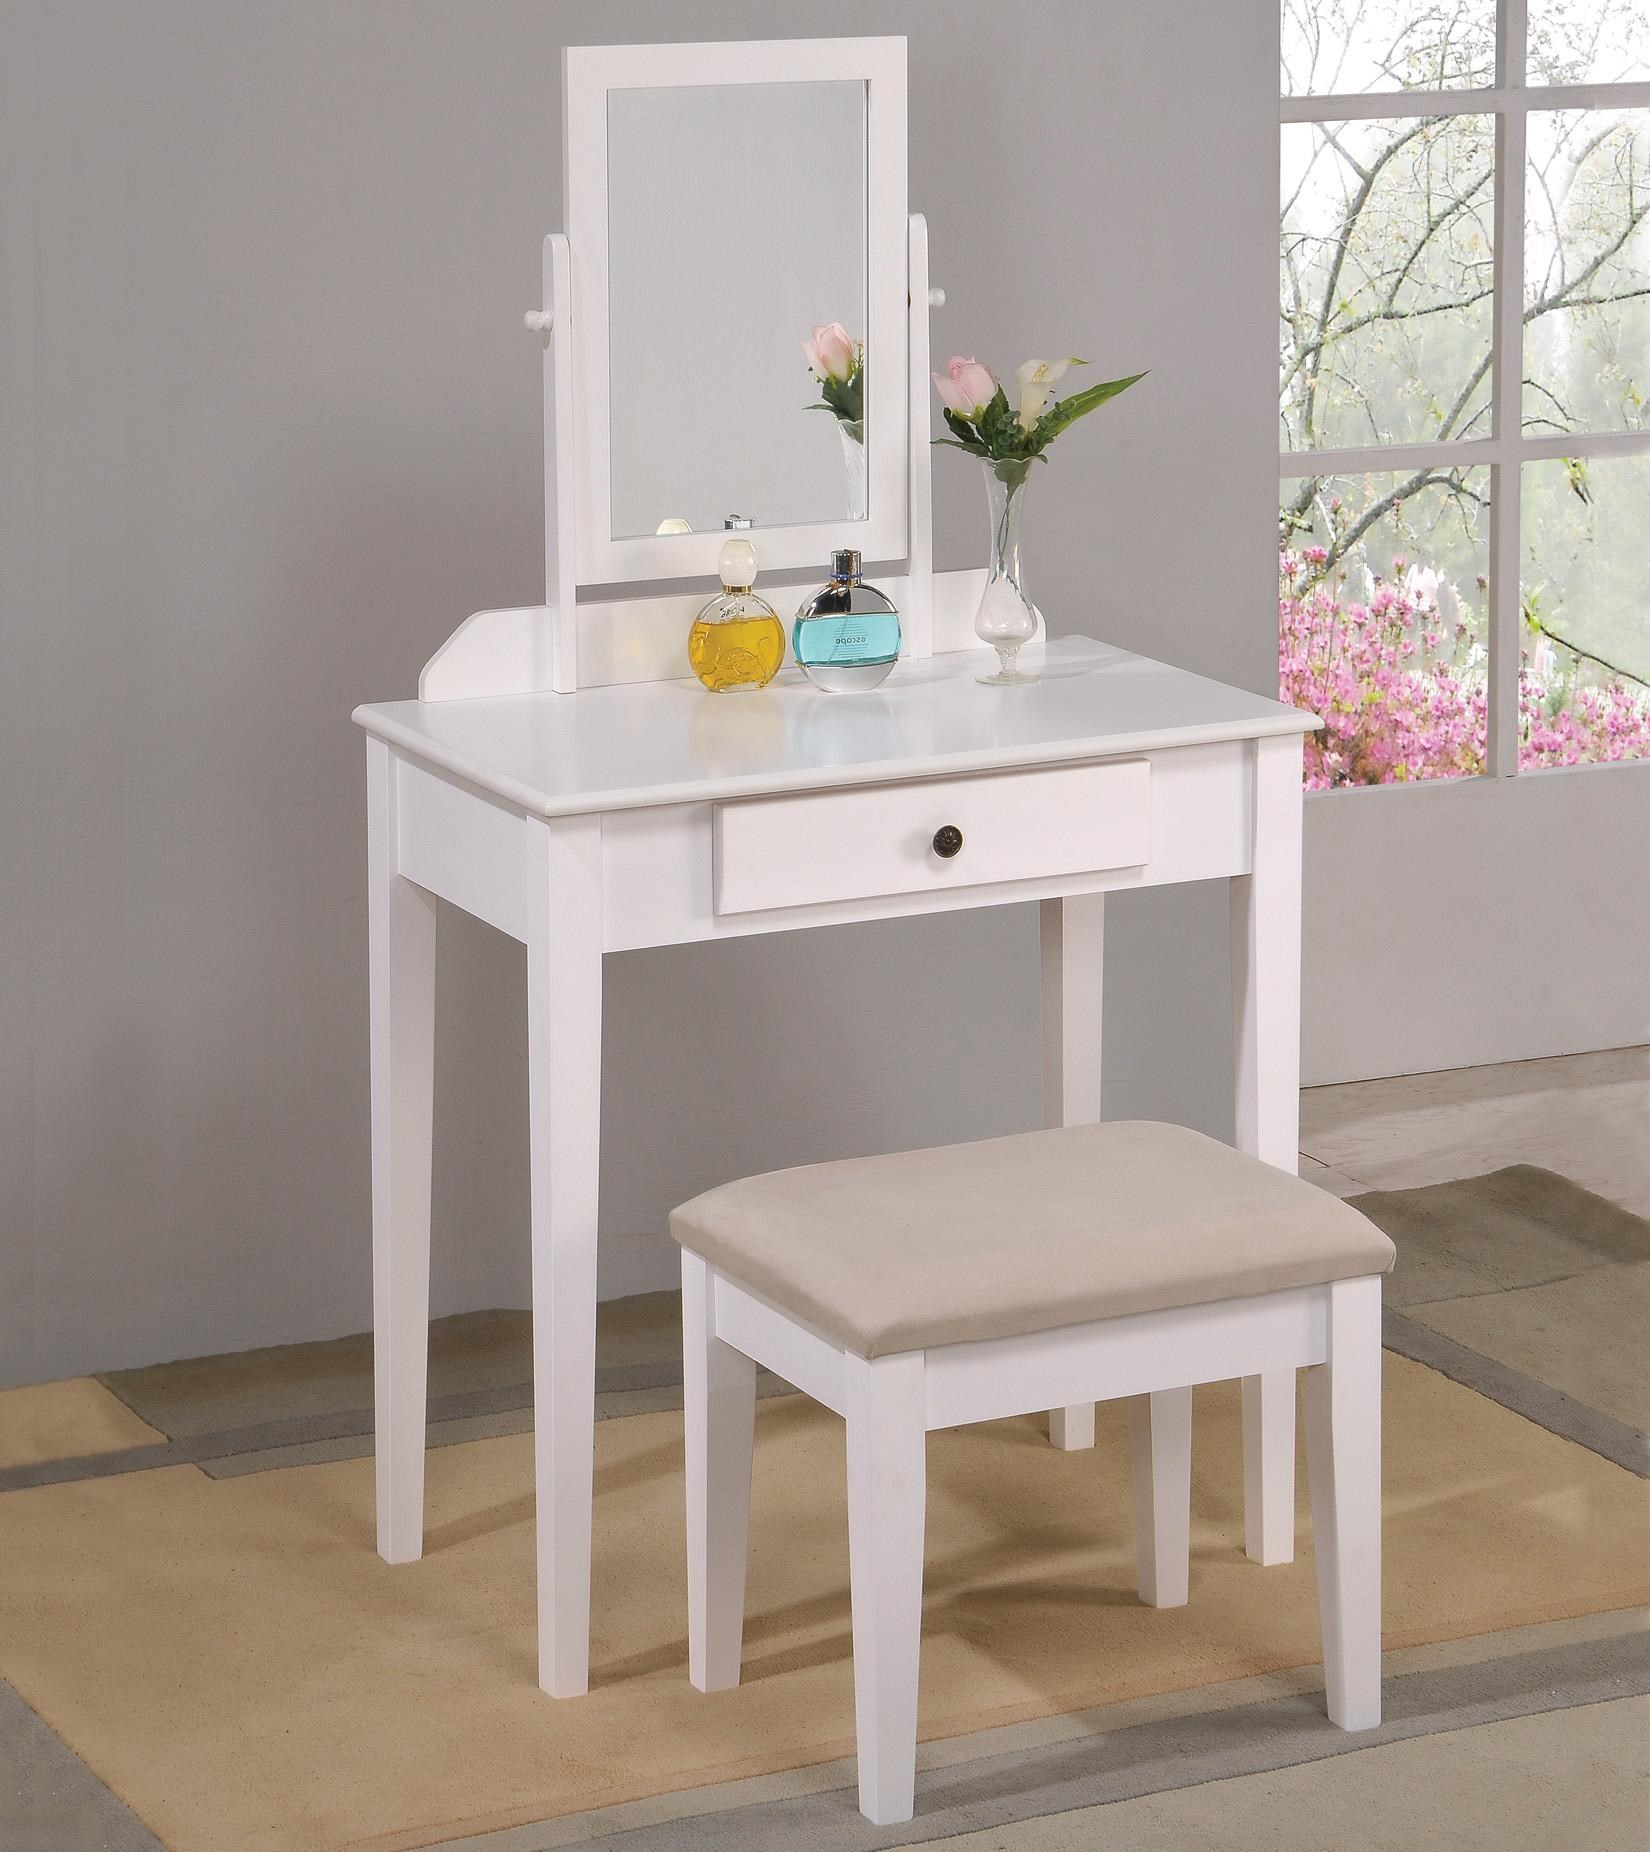 Transitional Vanity Table & Stool